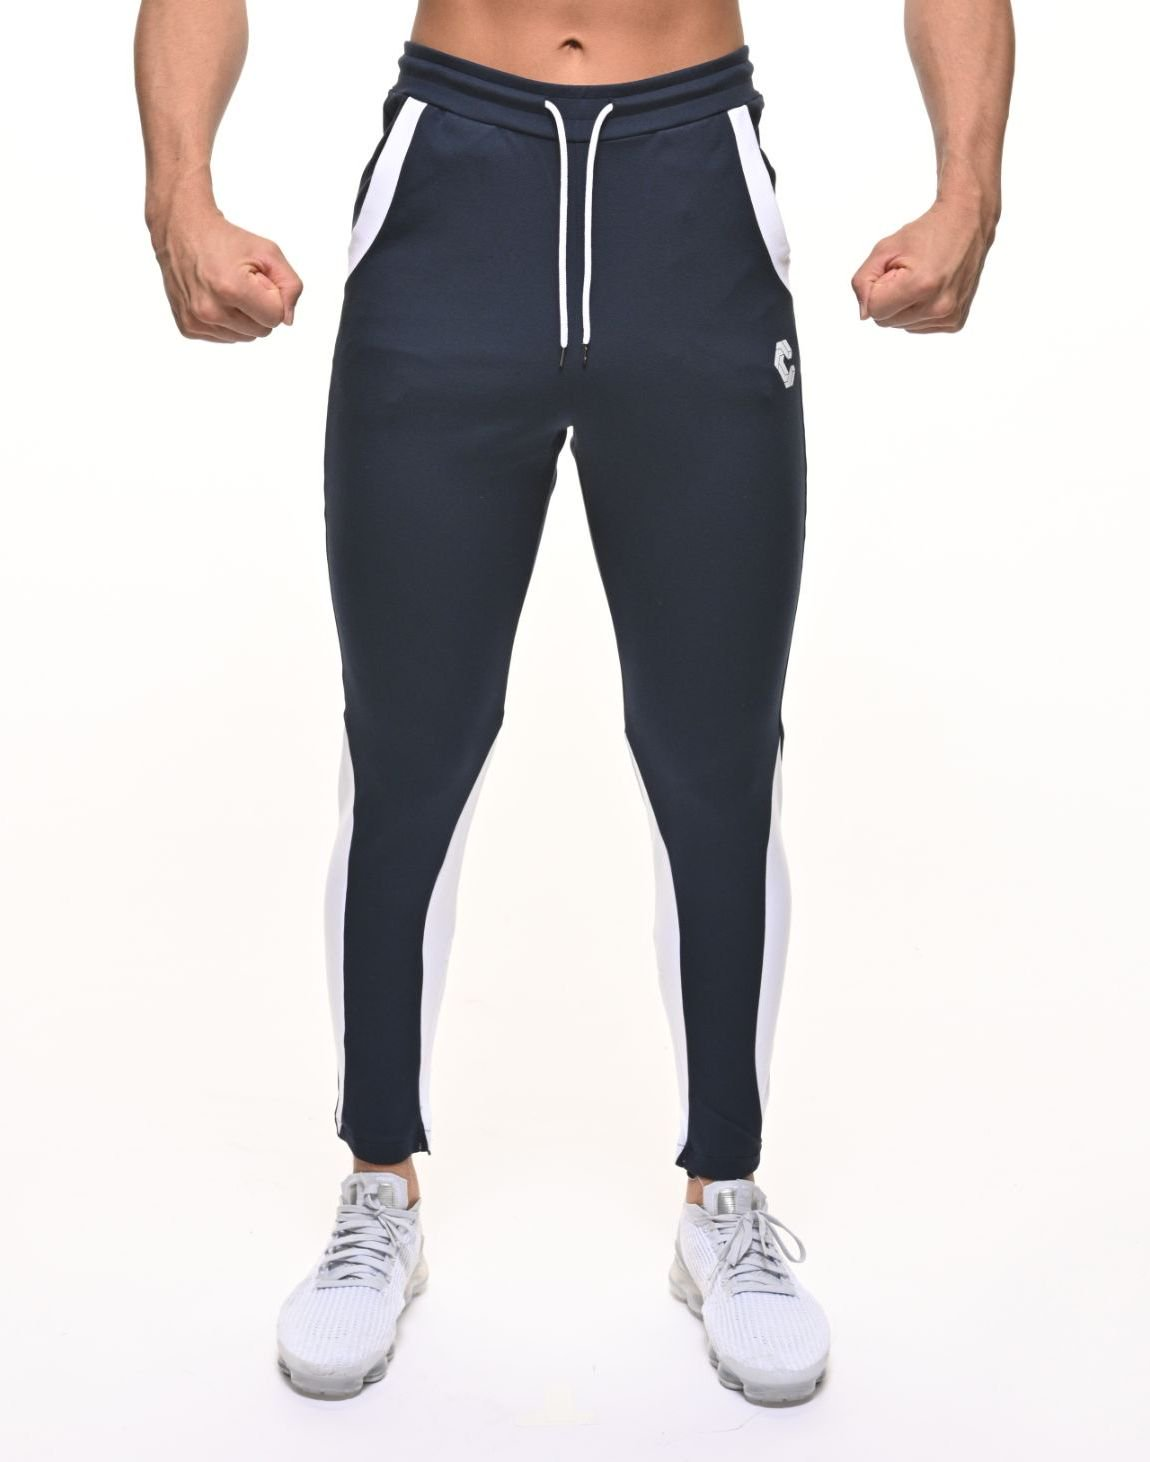 <img class='new_mark_img1' src='https://img.shop-pro.jp/img/new/icons55.gif' style='border:none;display:inline;margin:0px;padding:0px;width:auto;' />CRNS CALF SHAPE LINE PANTS【NAVY】